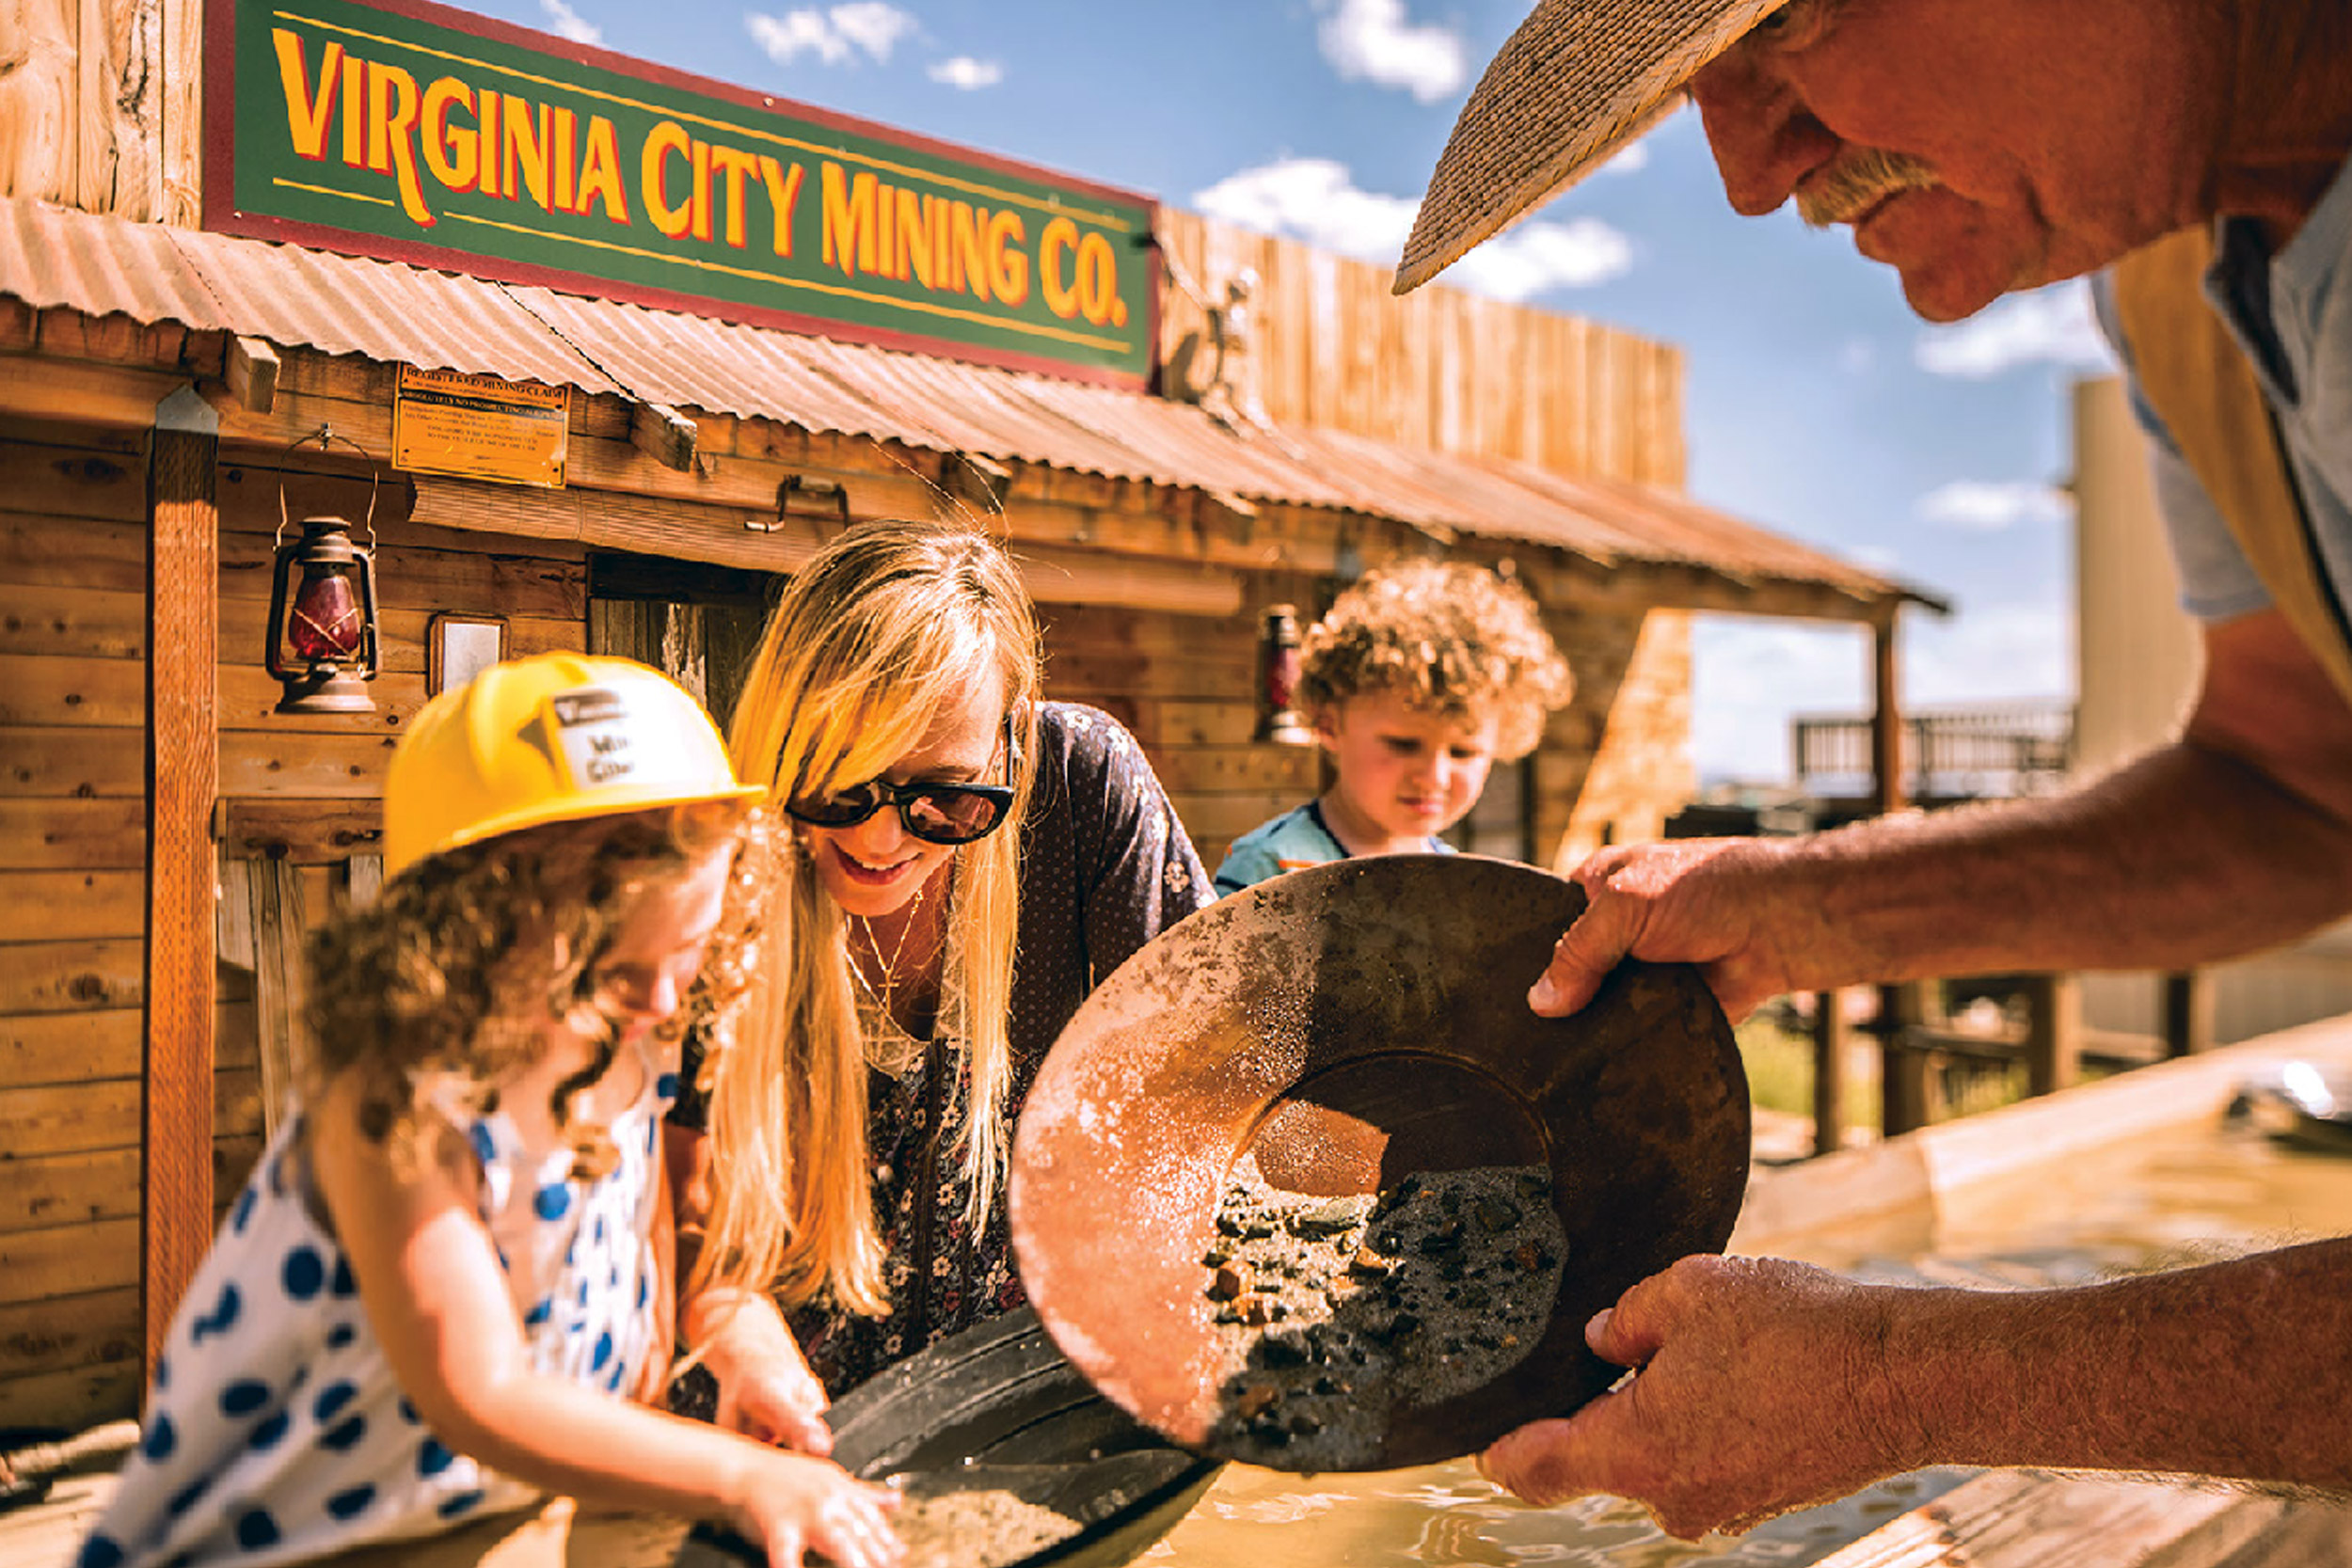 People pan for gold at Virginia City Mining Co.